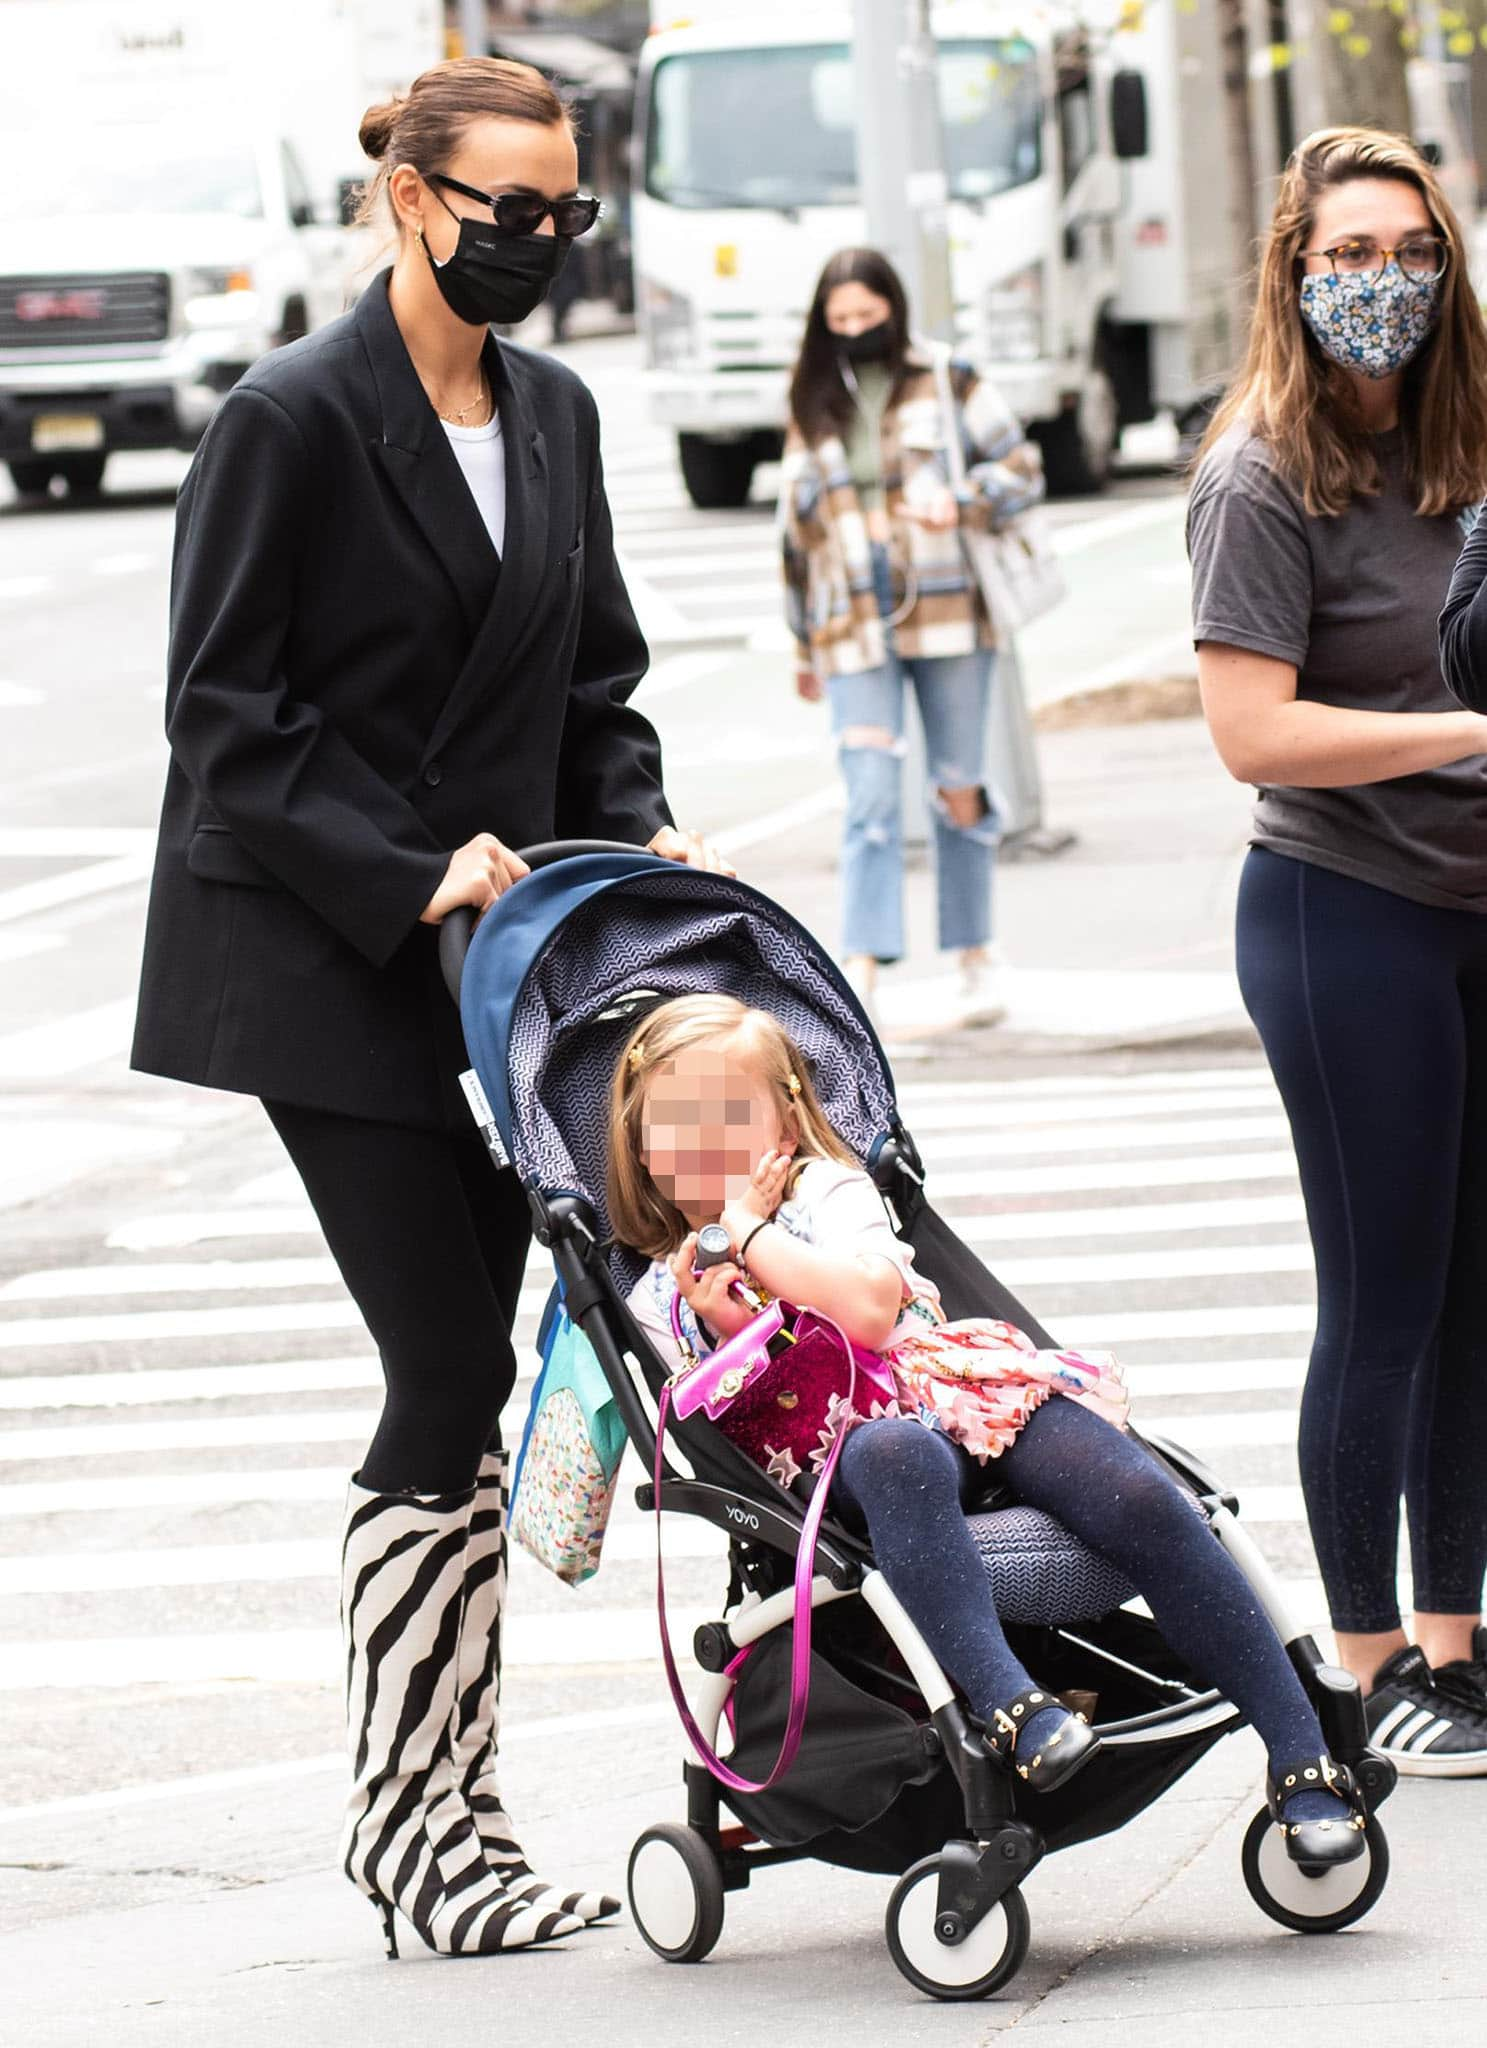 Irina Shayk opts for business casual attire as she pushes her daughter's stroller around SoHo